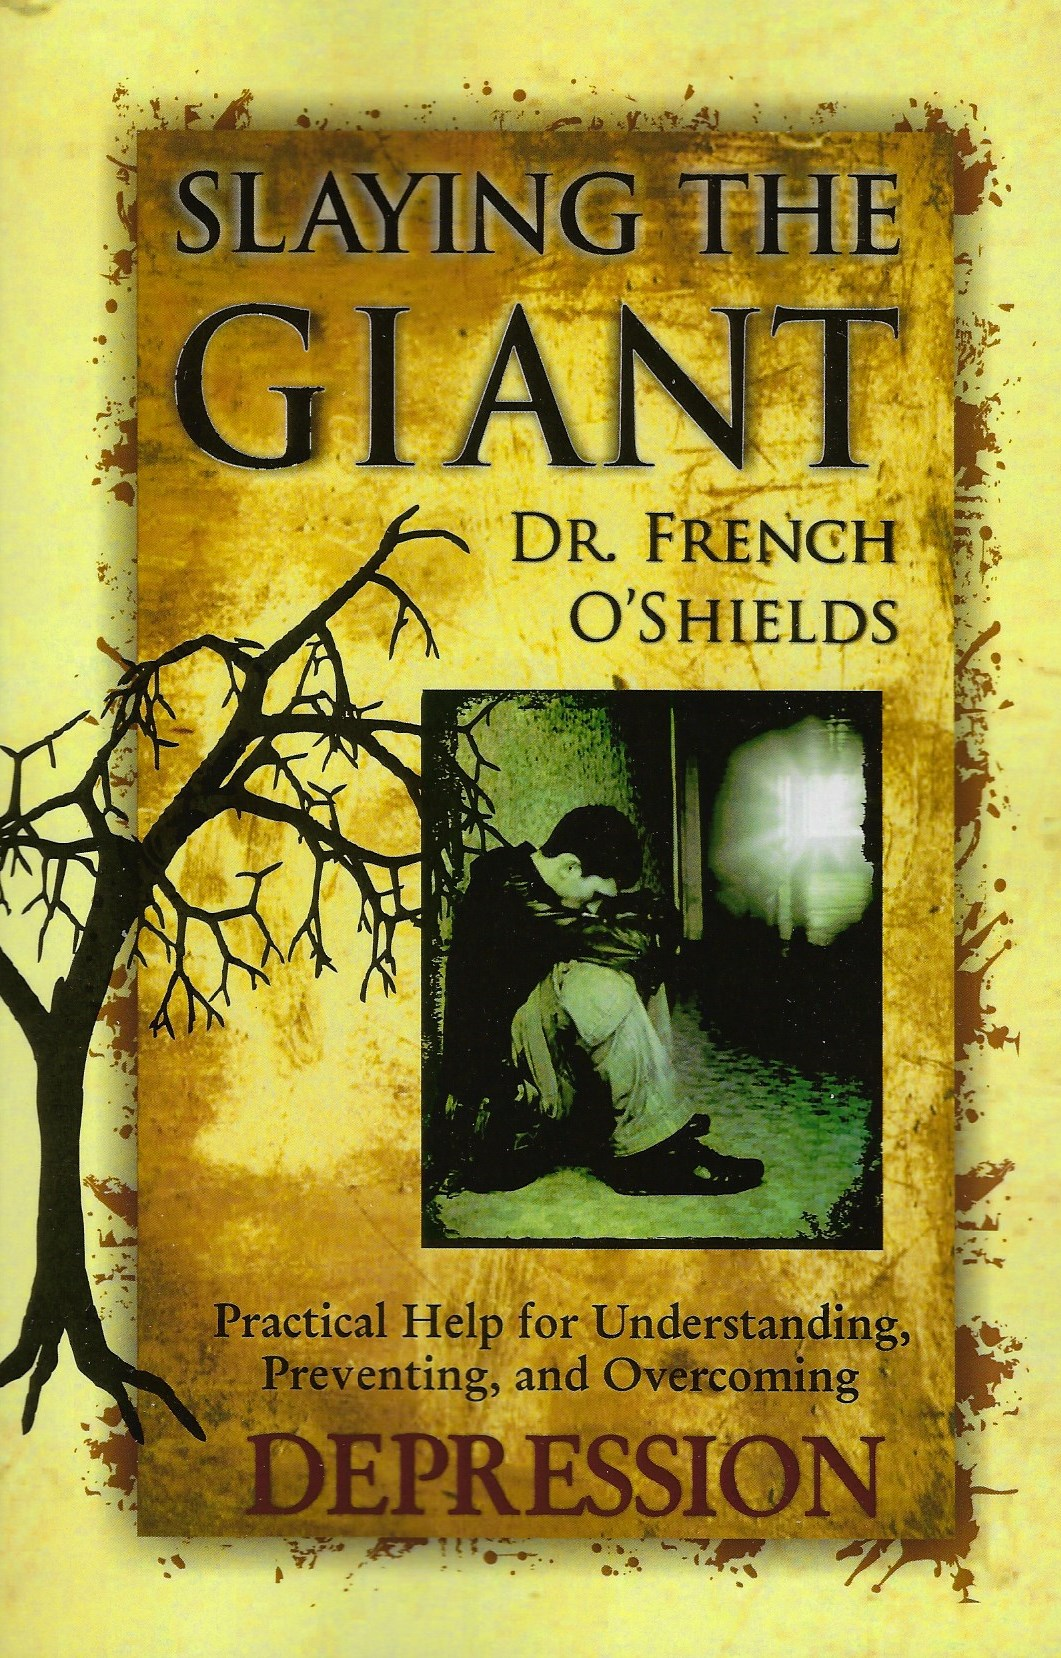 SLAYING THE GIANT Dr. French O'Shields